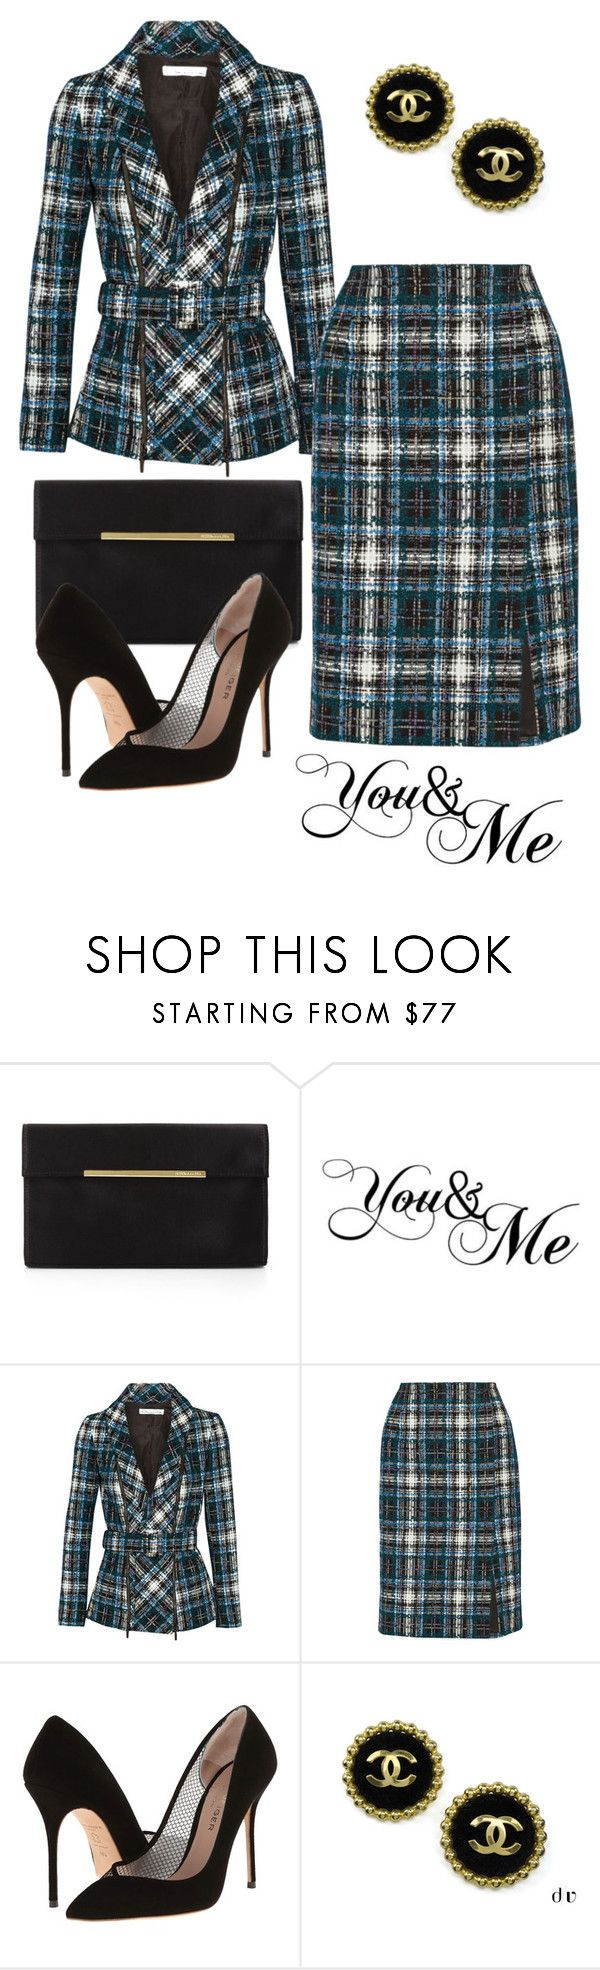 """Y.2 [Crown Princess Helene] : FEB 7 - Presenting Award at World Cancer Day"" by tigerlily ❤ liked on Polyvore featuring BCBGMAXAZRIA, WALL, Oscar de la Renta, Kurt Geiger and Chanel"